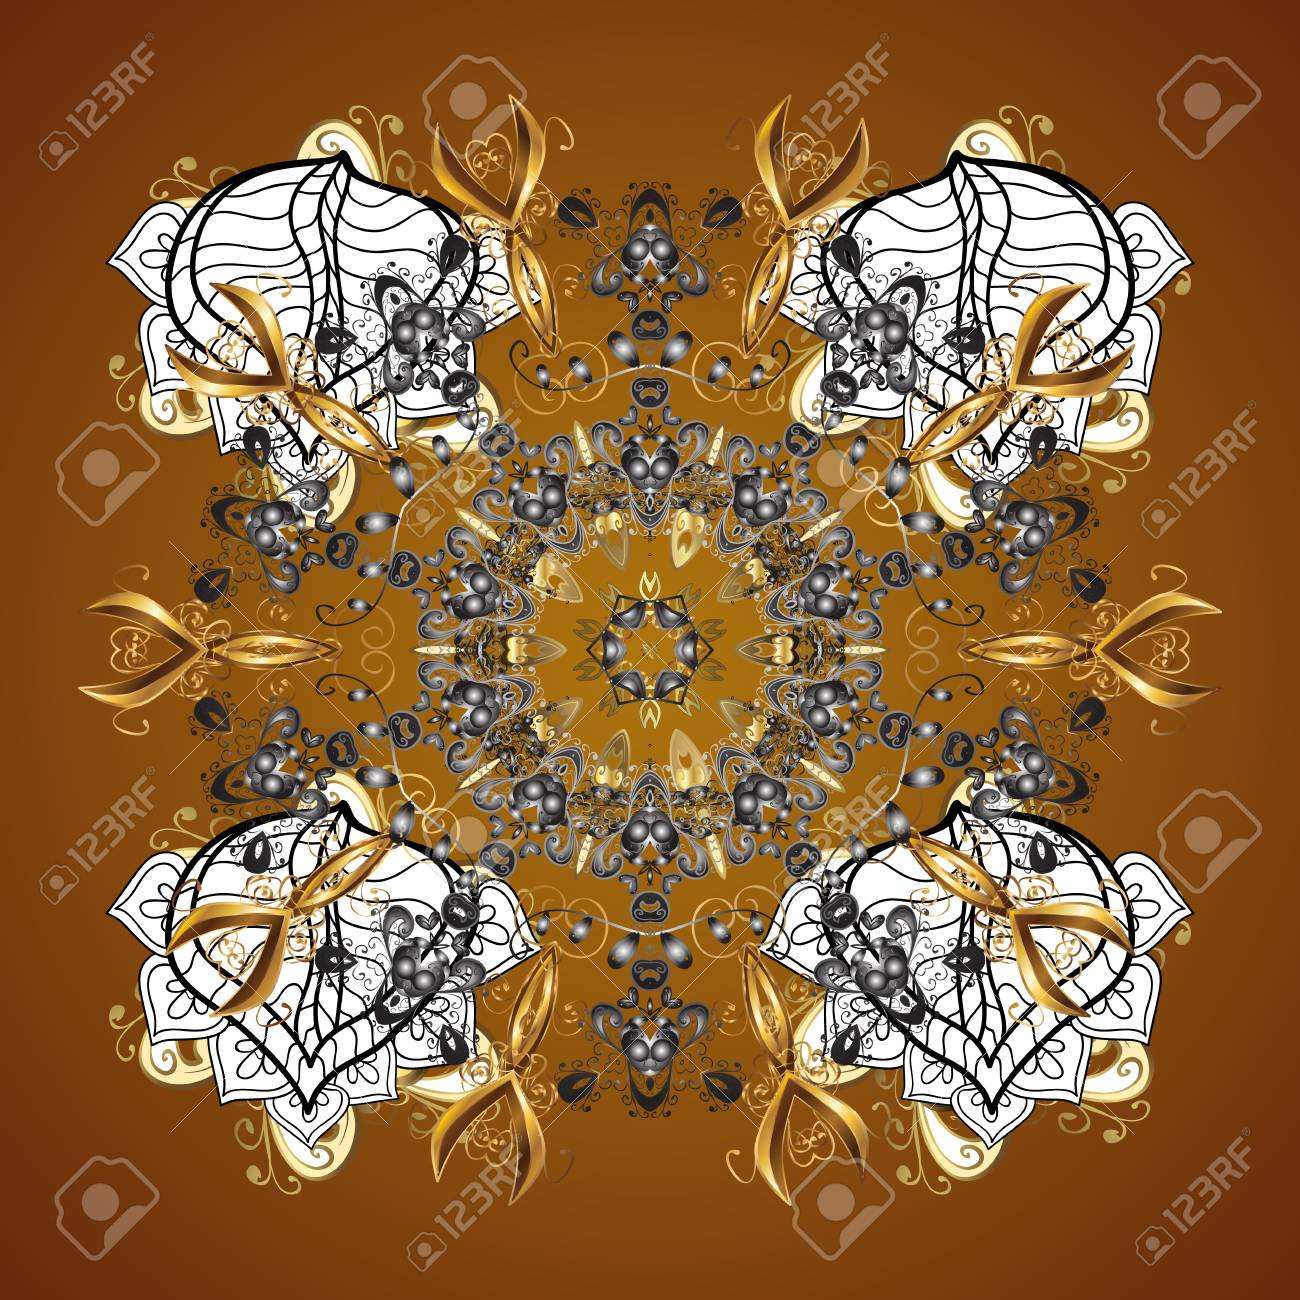 Ornamental Artistic Vector Illustration In Brown Colors For Merry ...